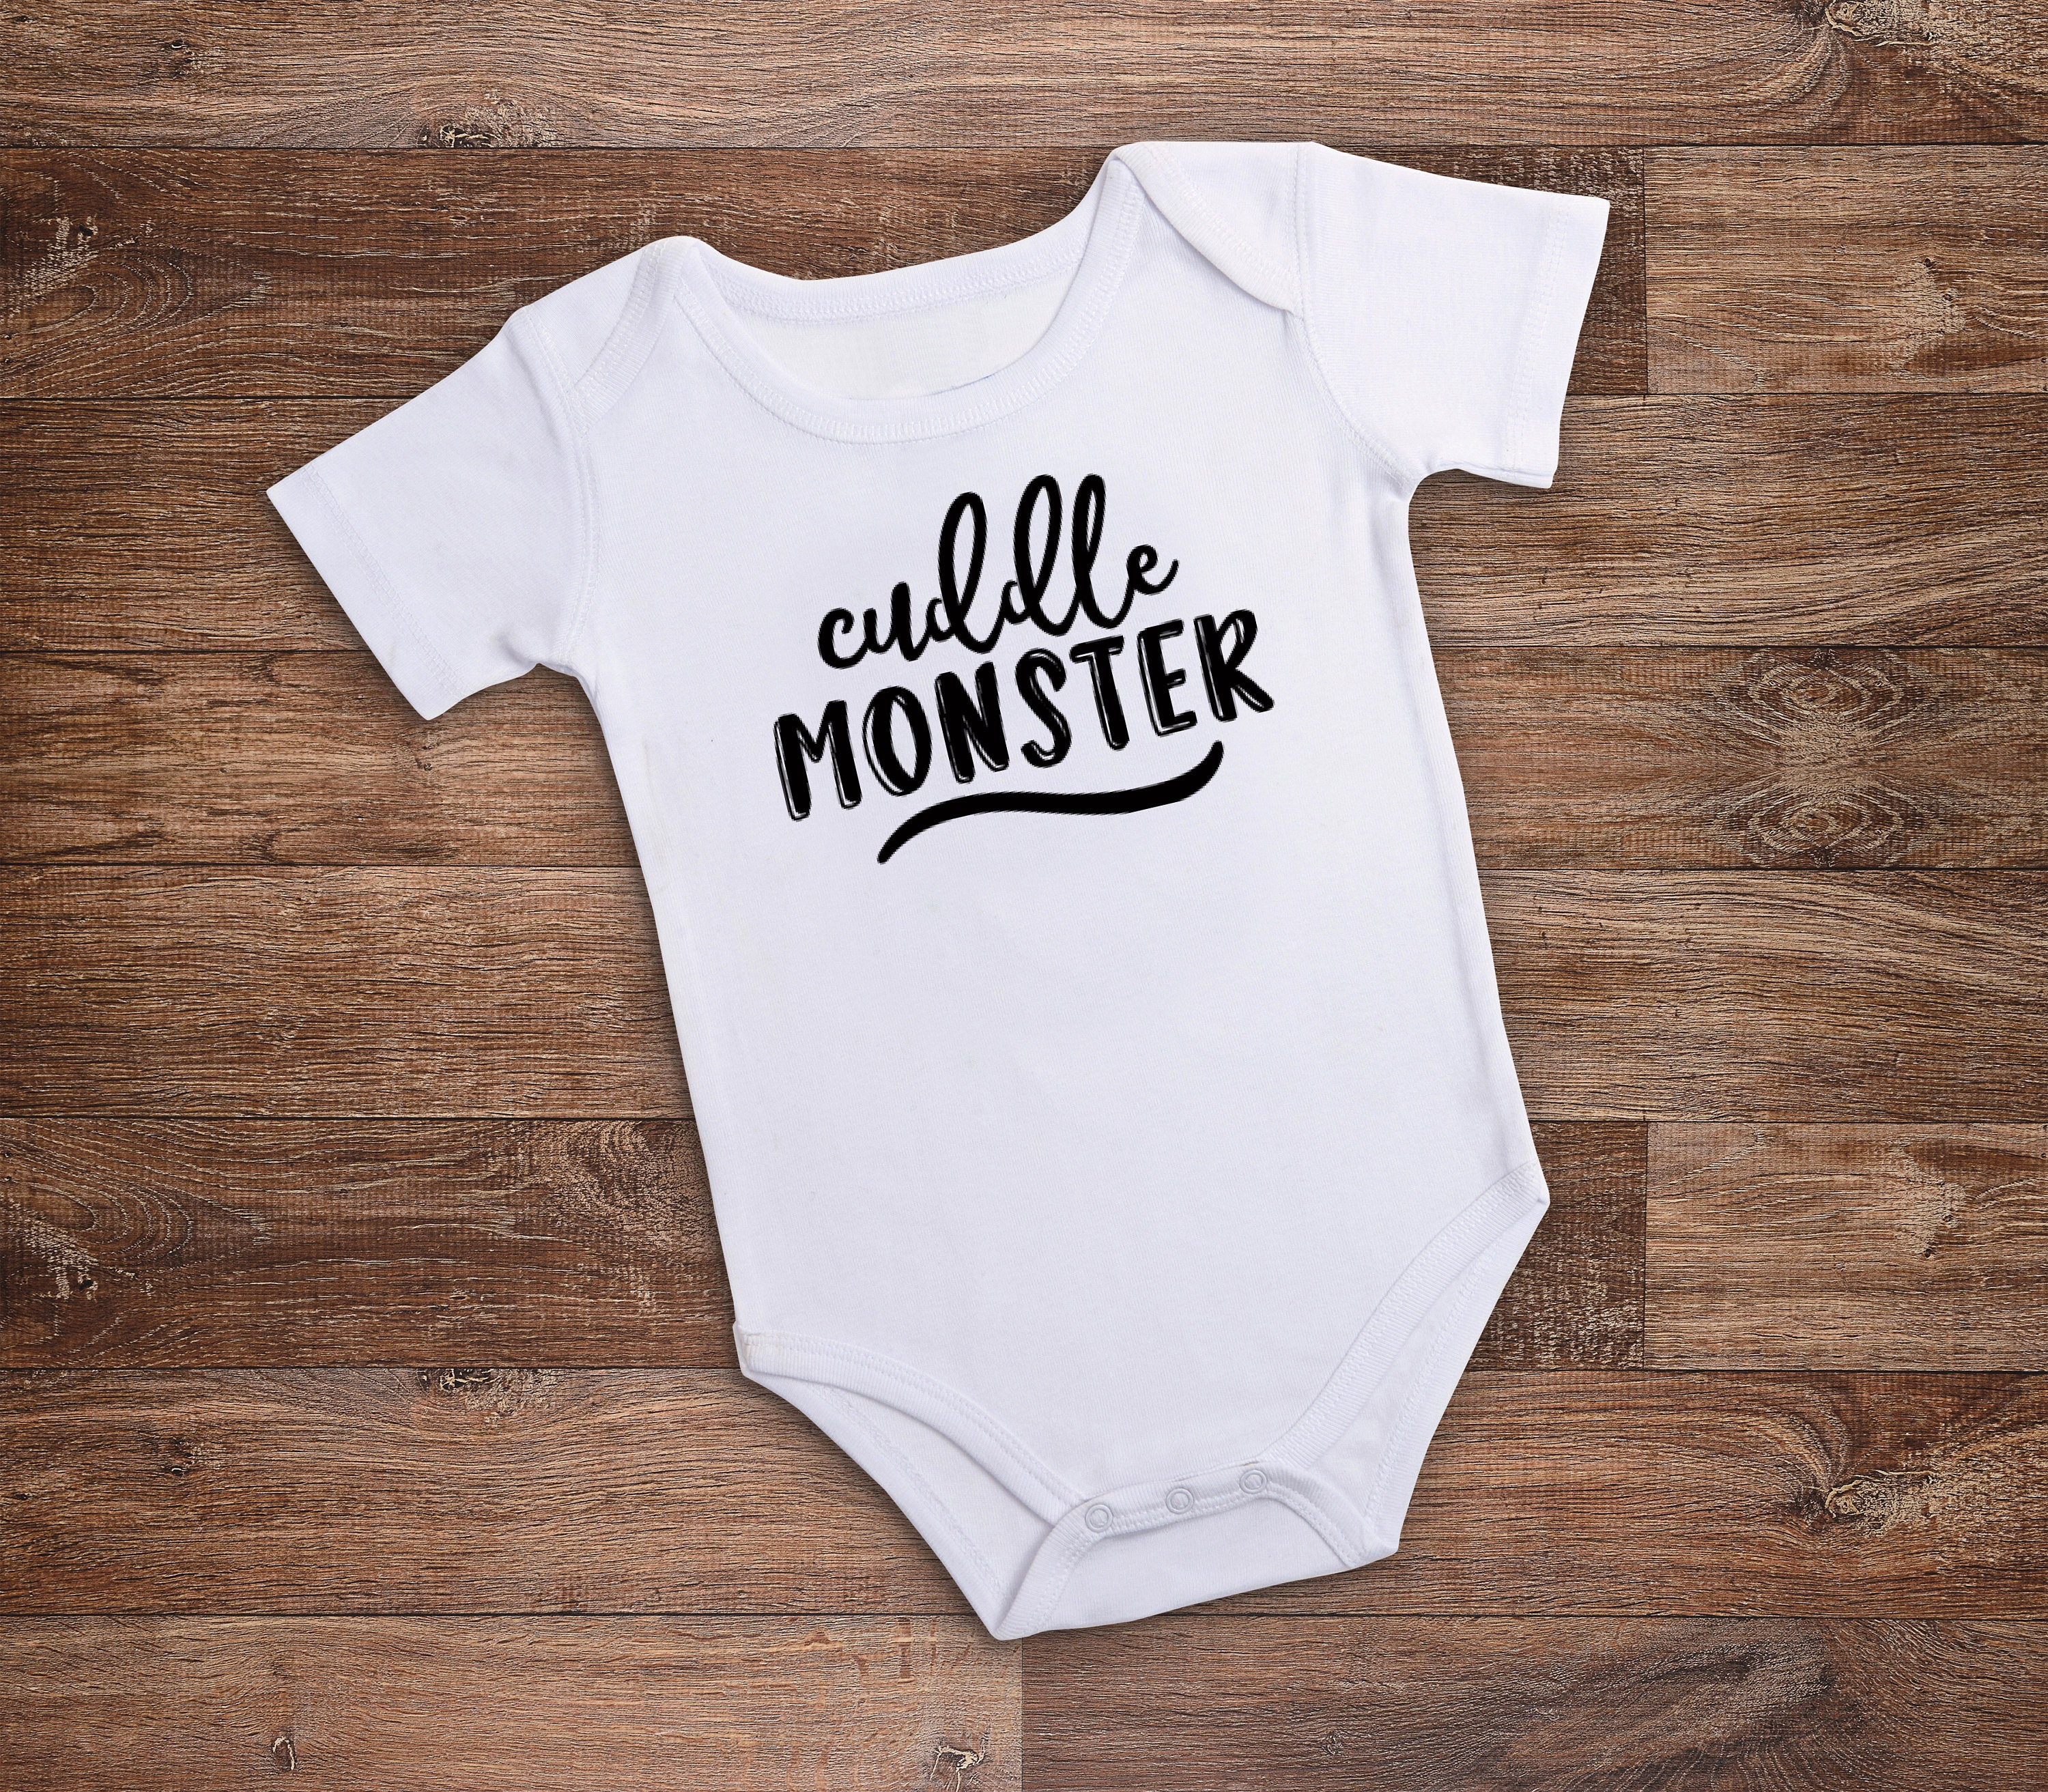 Cuddle Monster Funny Bodysuit Funny Baby Creeper Funny Baby